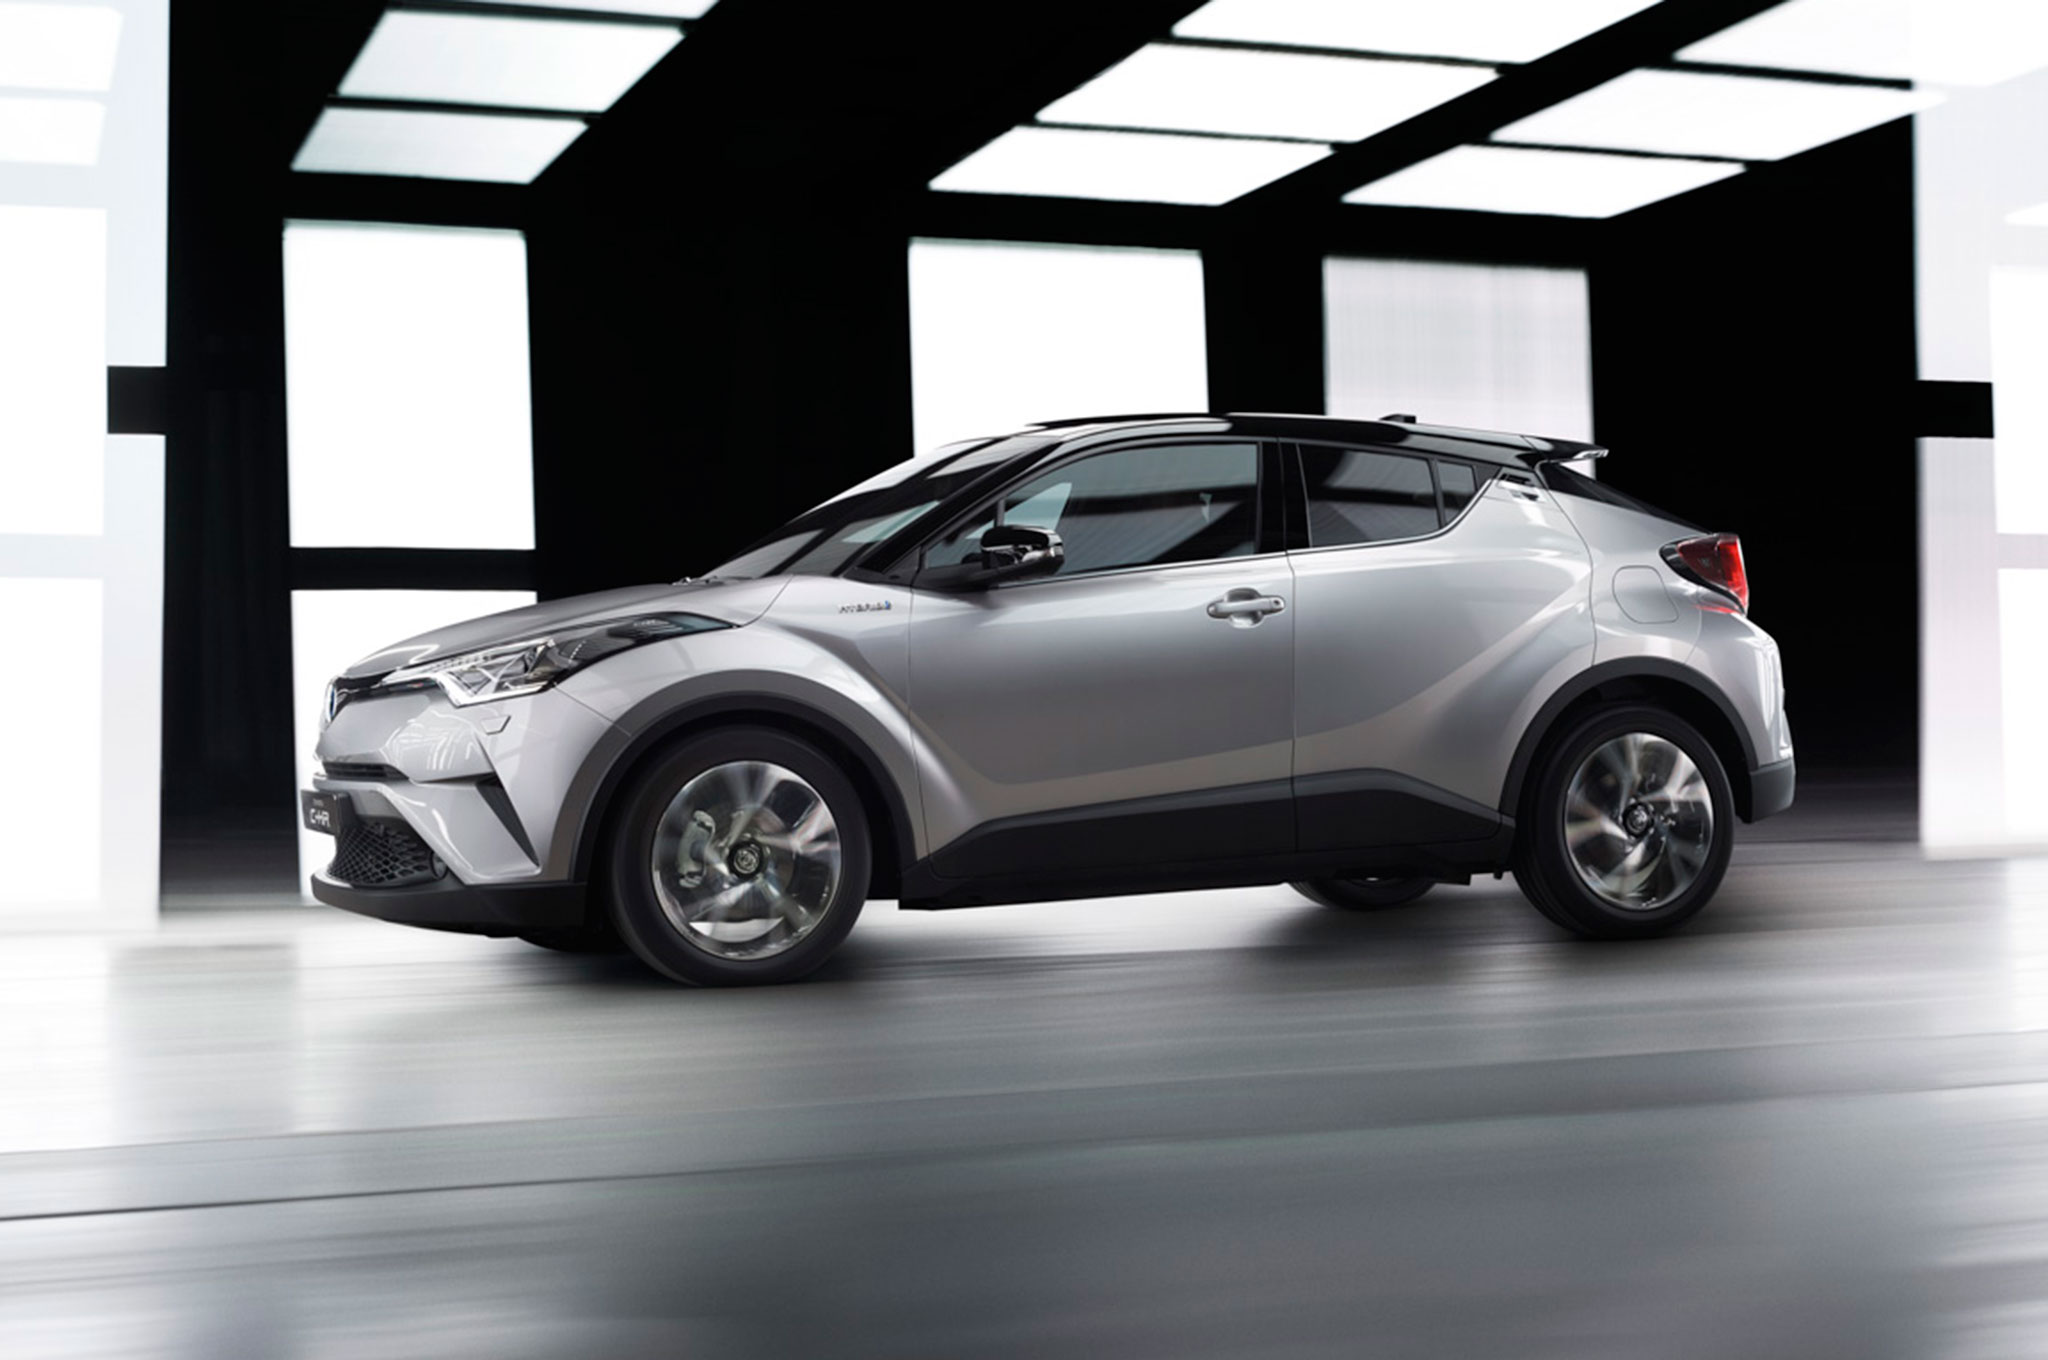 Toyota Prius For Sale >> Toyota C-HR Debuts in U.S. Later this Year, On-Sale Spring 2017 | Automobile Magazine